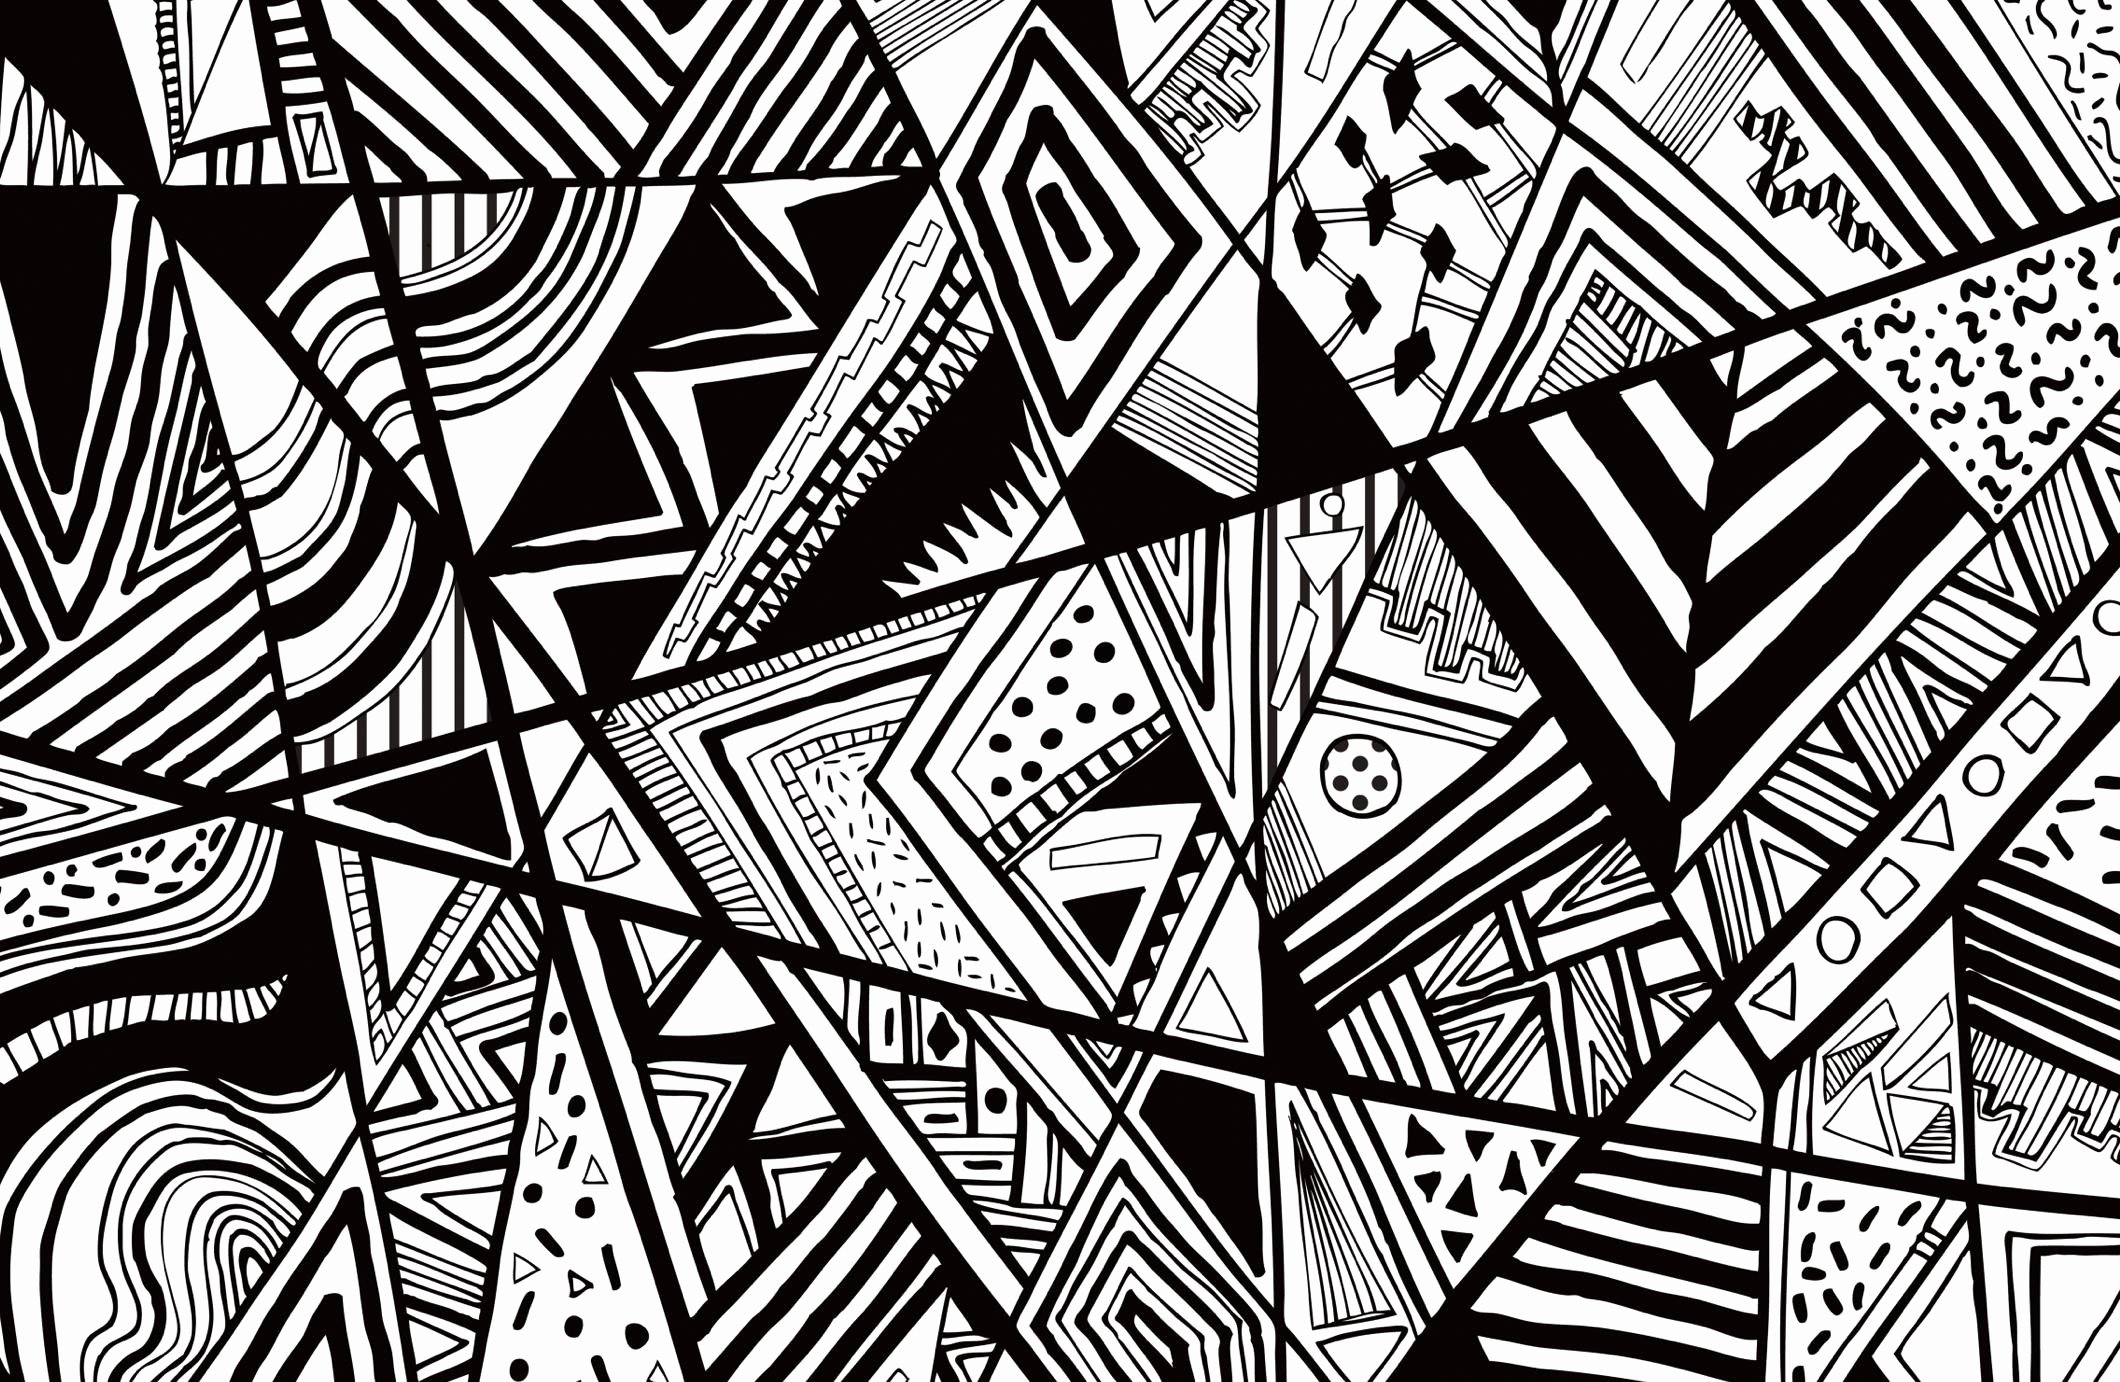 Black and White Abstract Artwork New Black and White Abstract Wallpaper ·① Wallpapertag